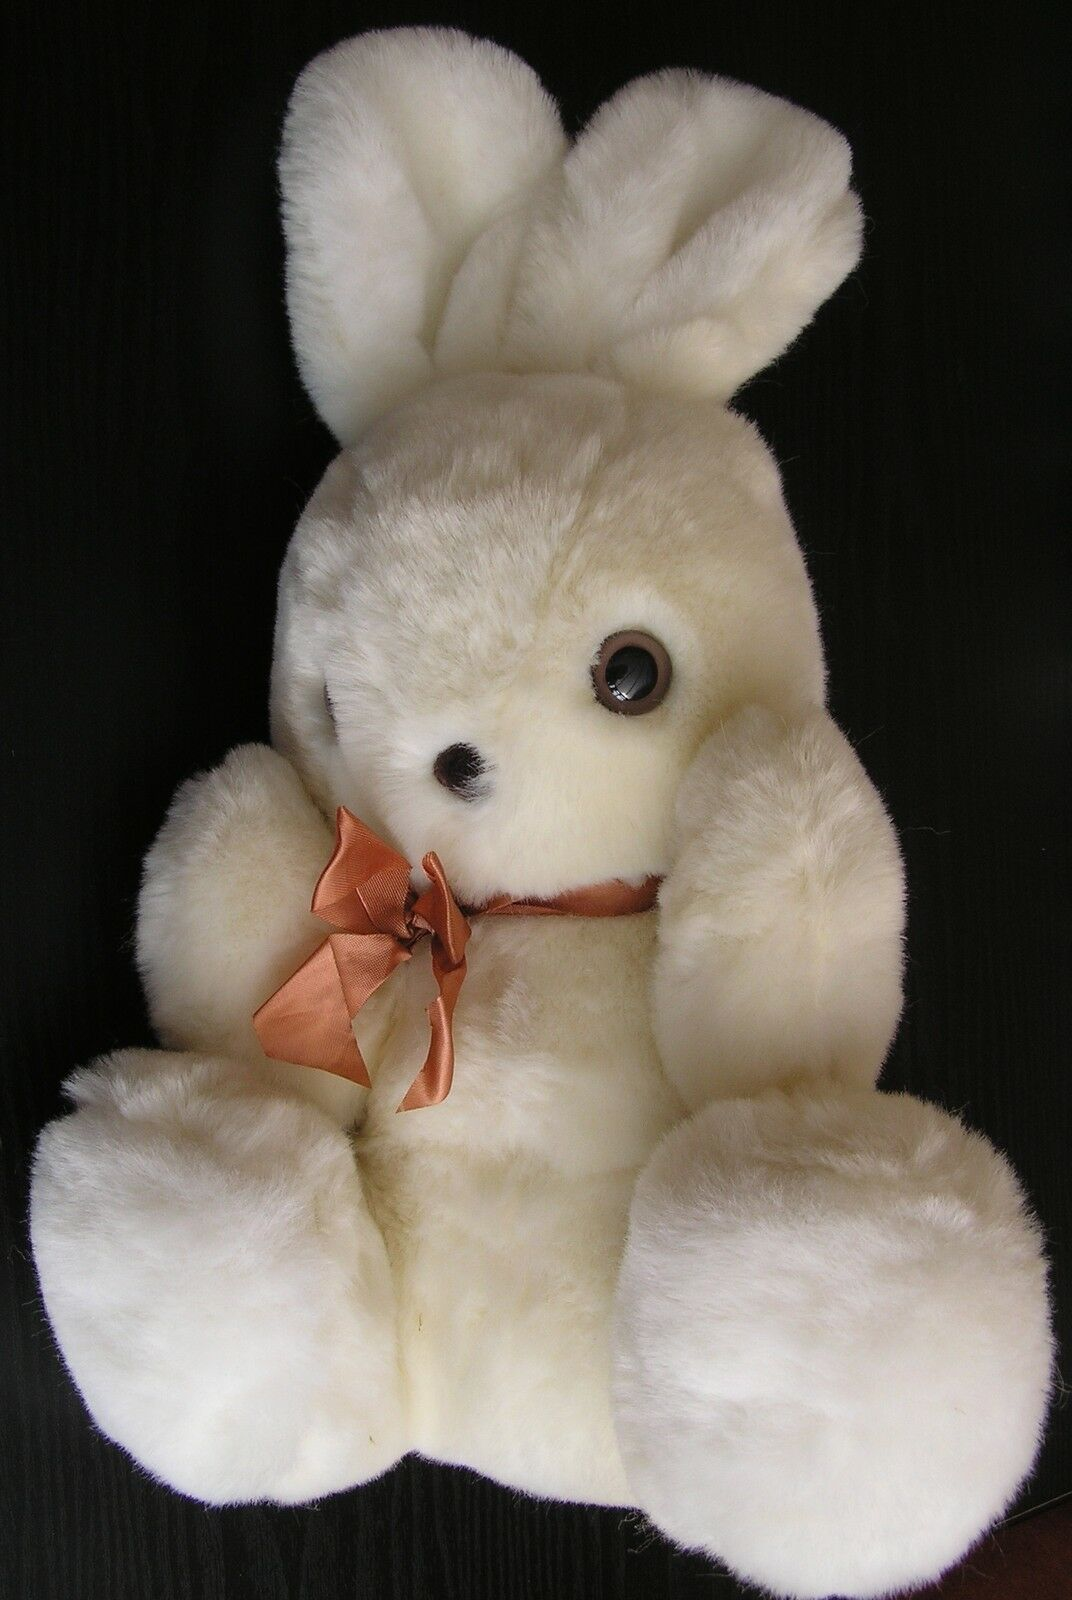 Vintage Nylena Made in Belfast Bunny Rabbit Soft Toy teddy bear